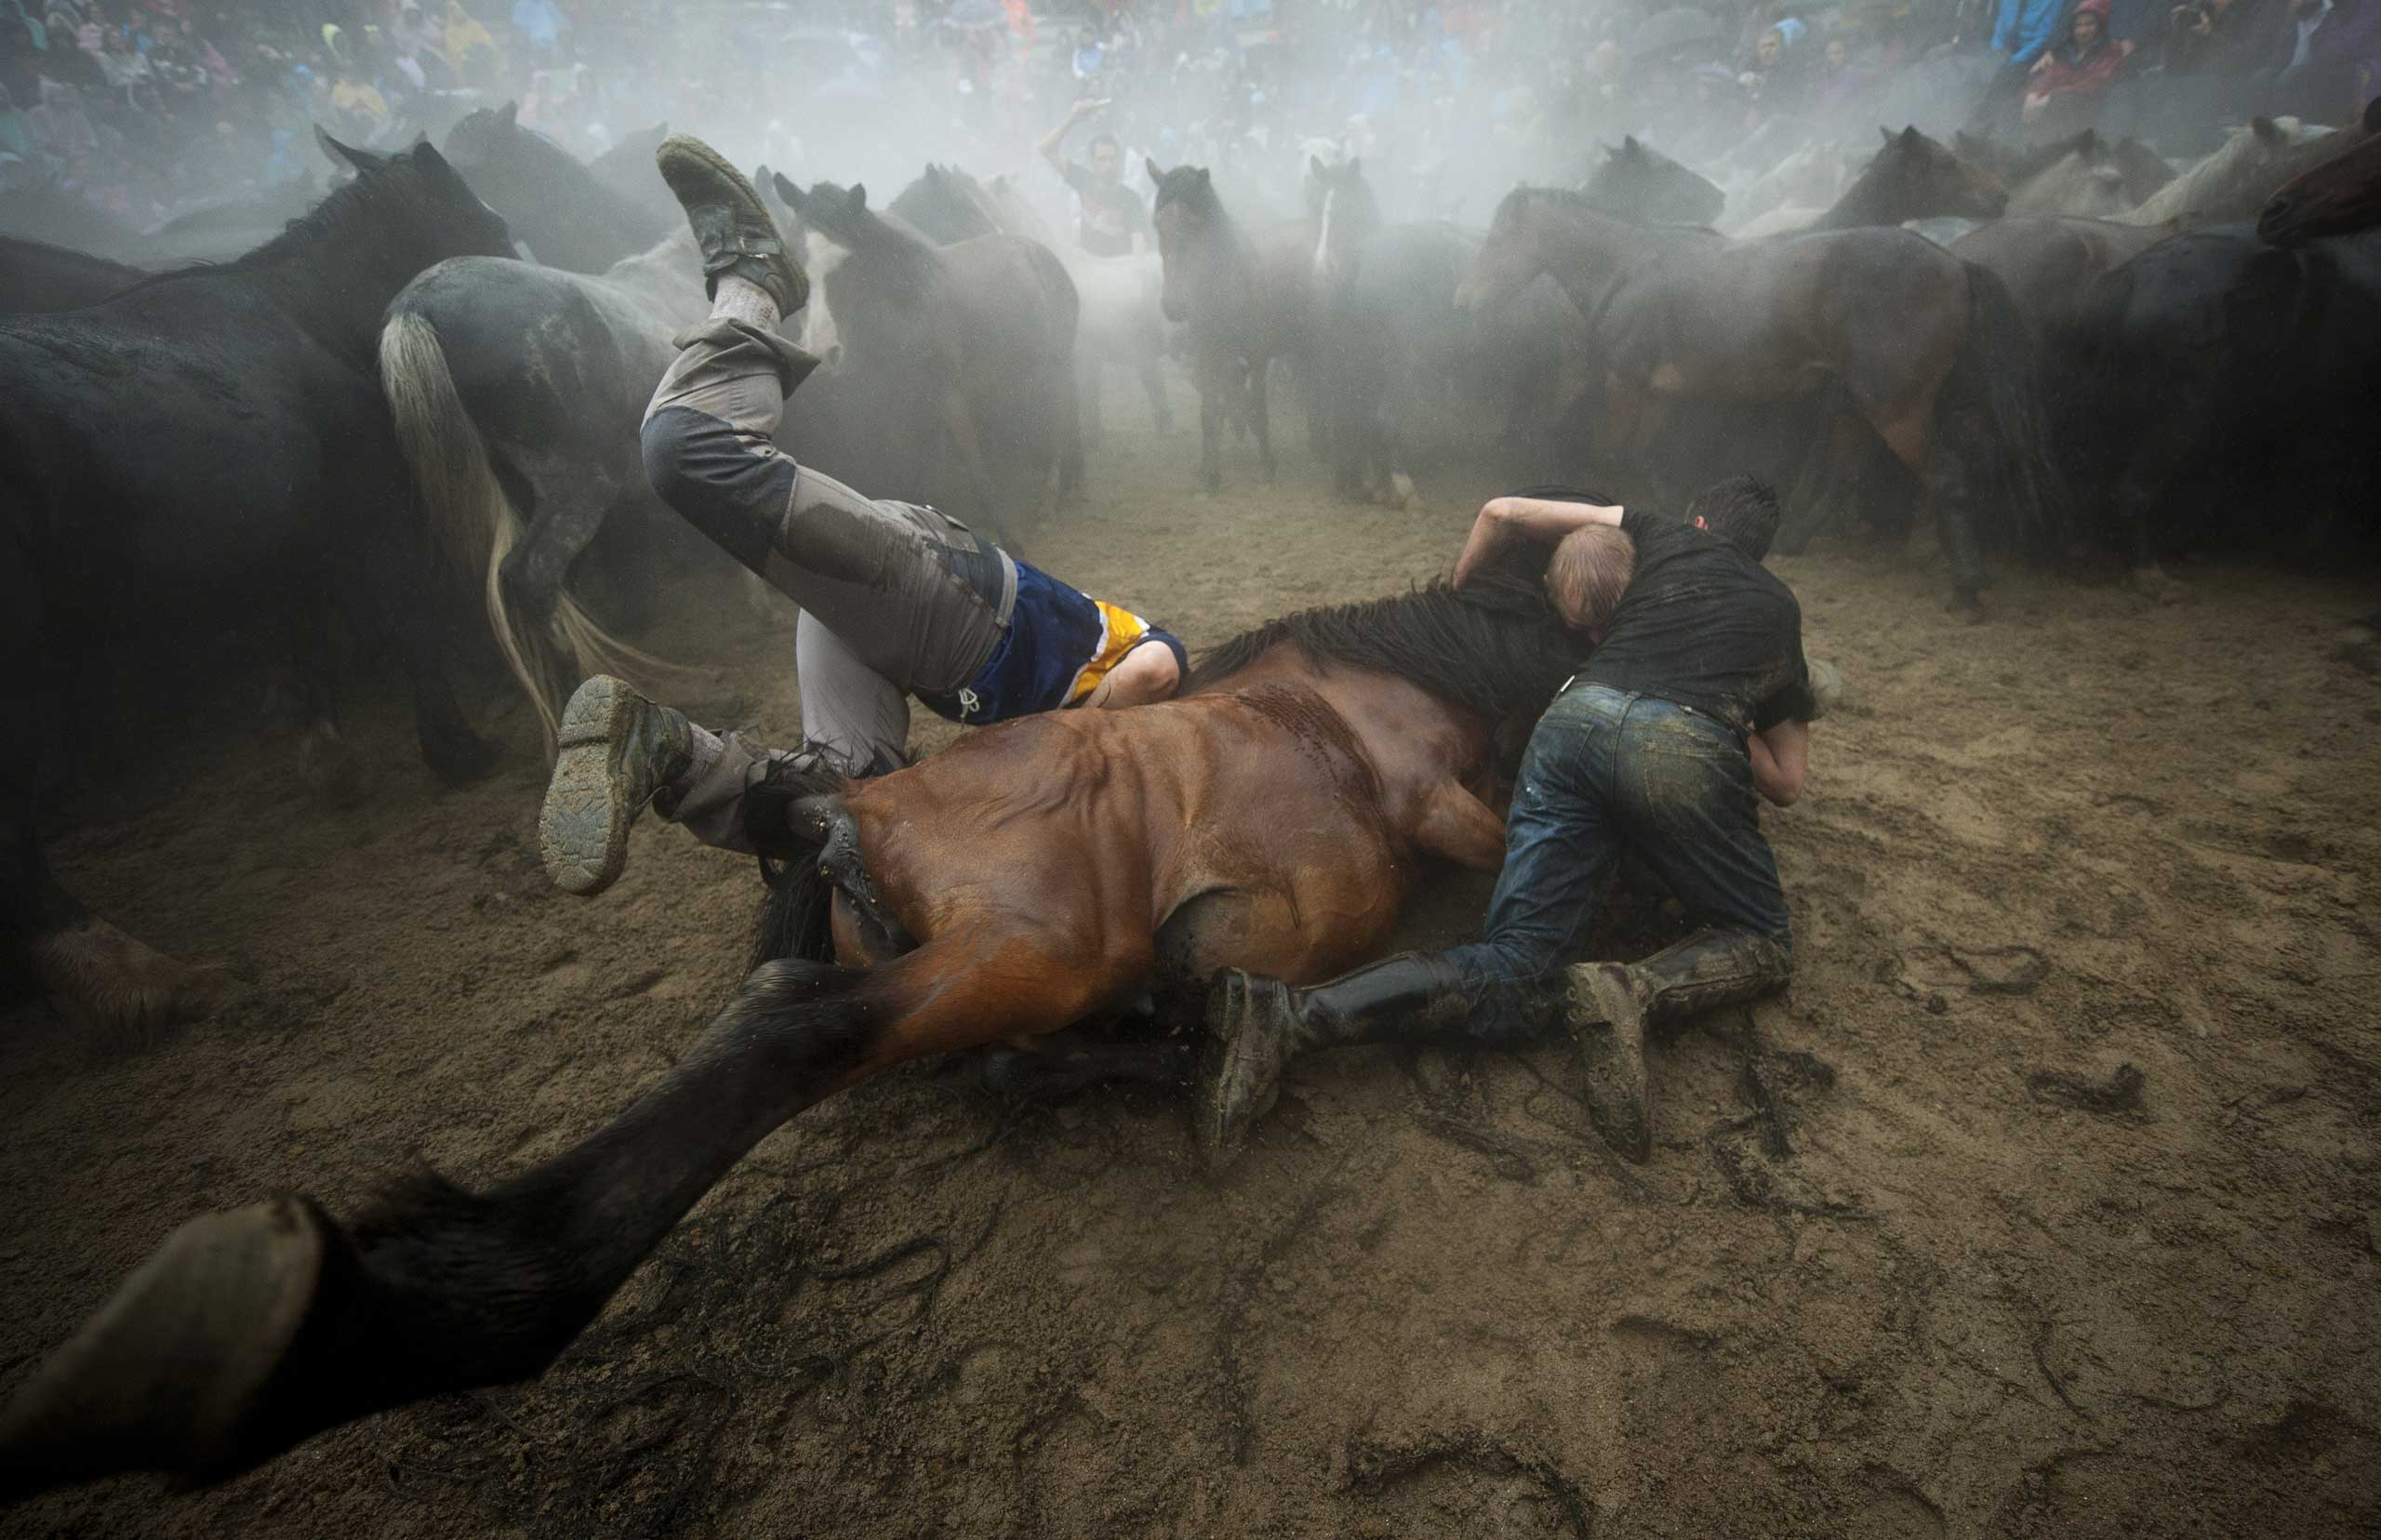 Fighters struggle with a wild horse during a traditional event in the Spanish village of Sabucedo,  July 5, 2014.